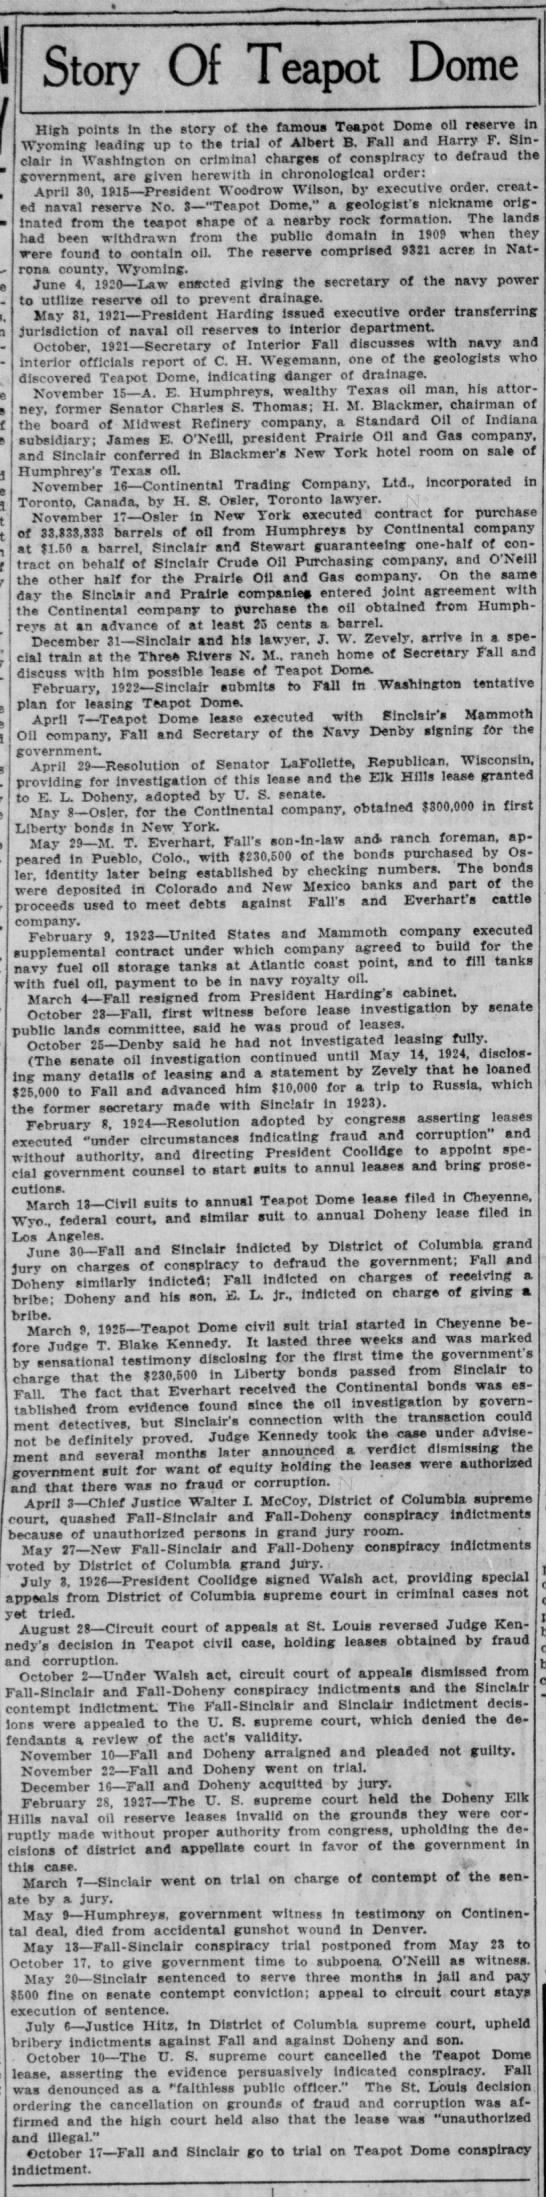 Time line of Teapot Dome scandal prior to Oct. 1927